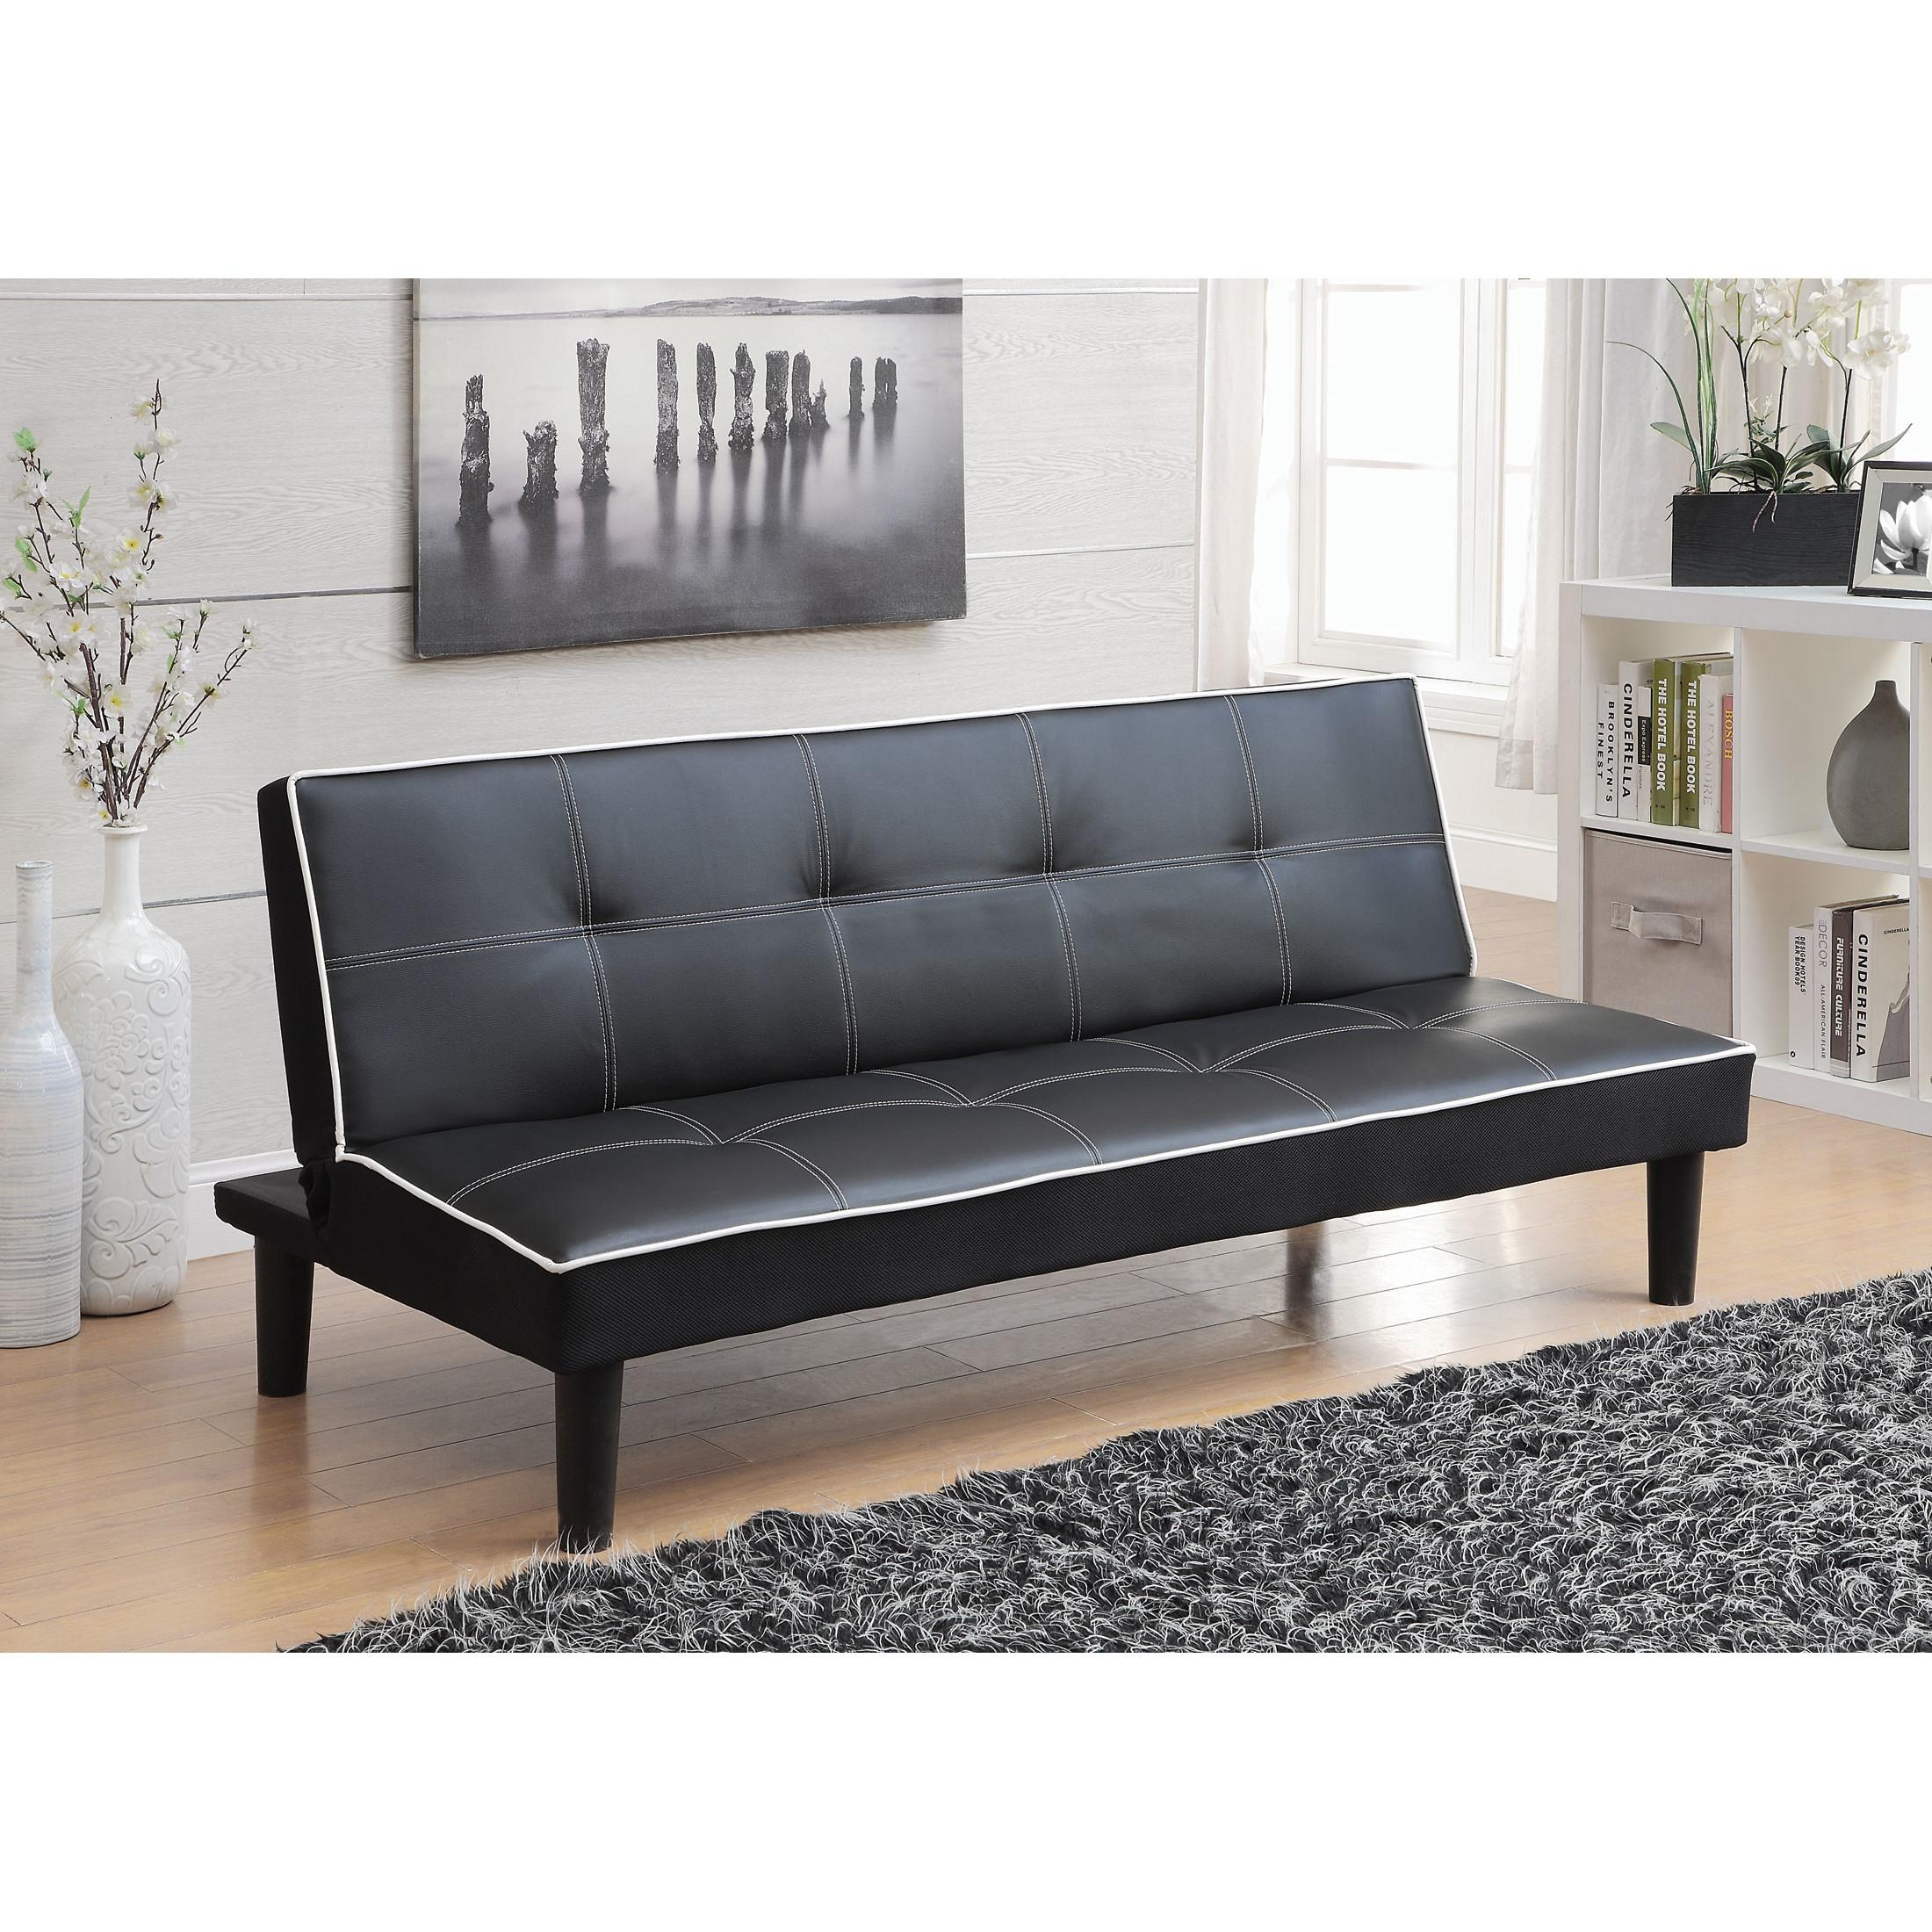 Types Of Sleeper Sofas – Ansugallery With Everyday Sleeper Sofas (View 13 of 20)